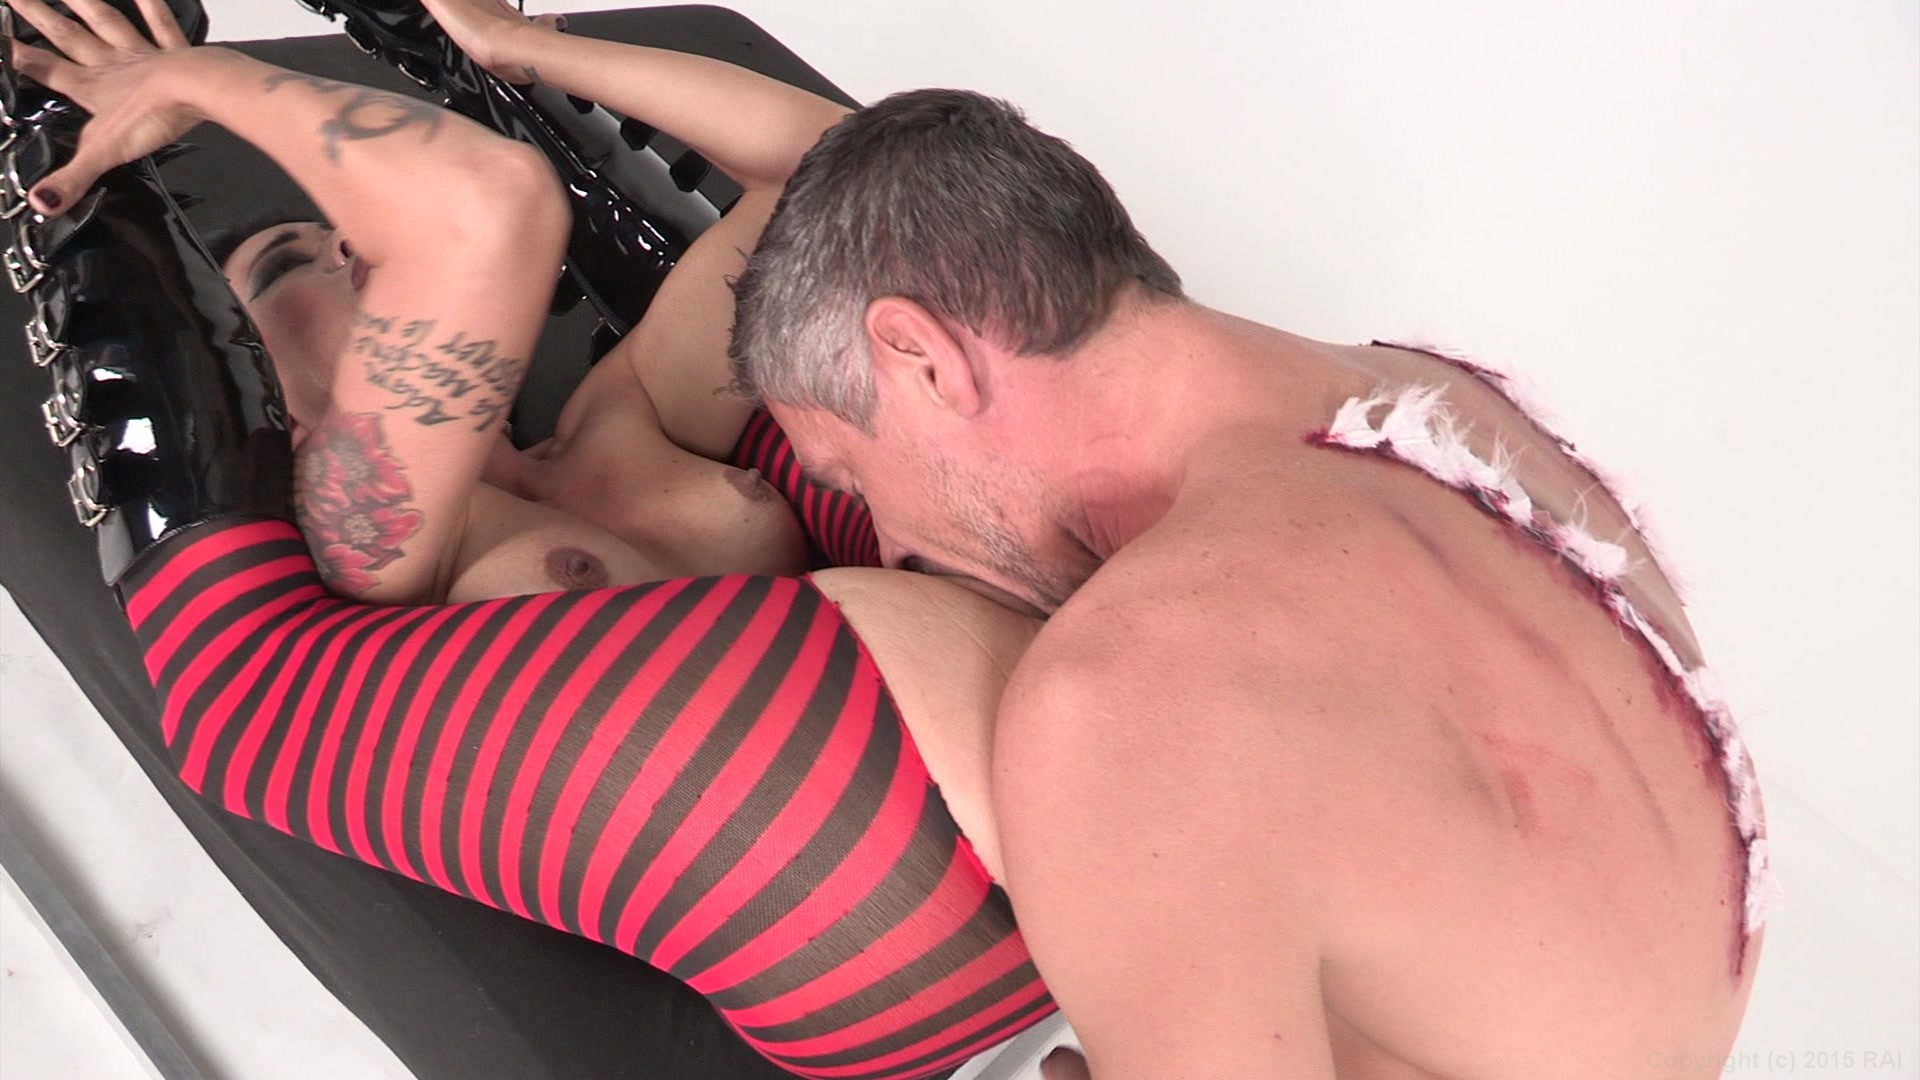 Scene with Mick Blue and Dana Vespoli - image 14 out of 20